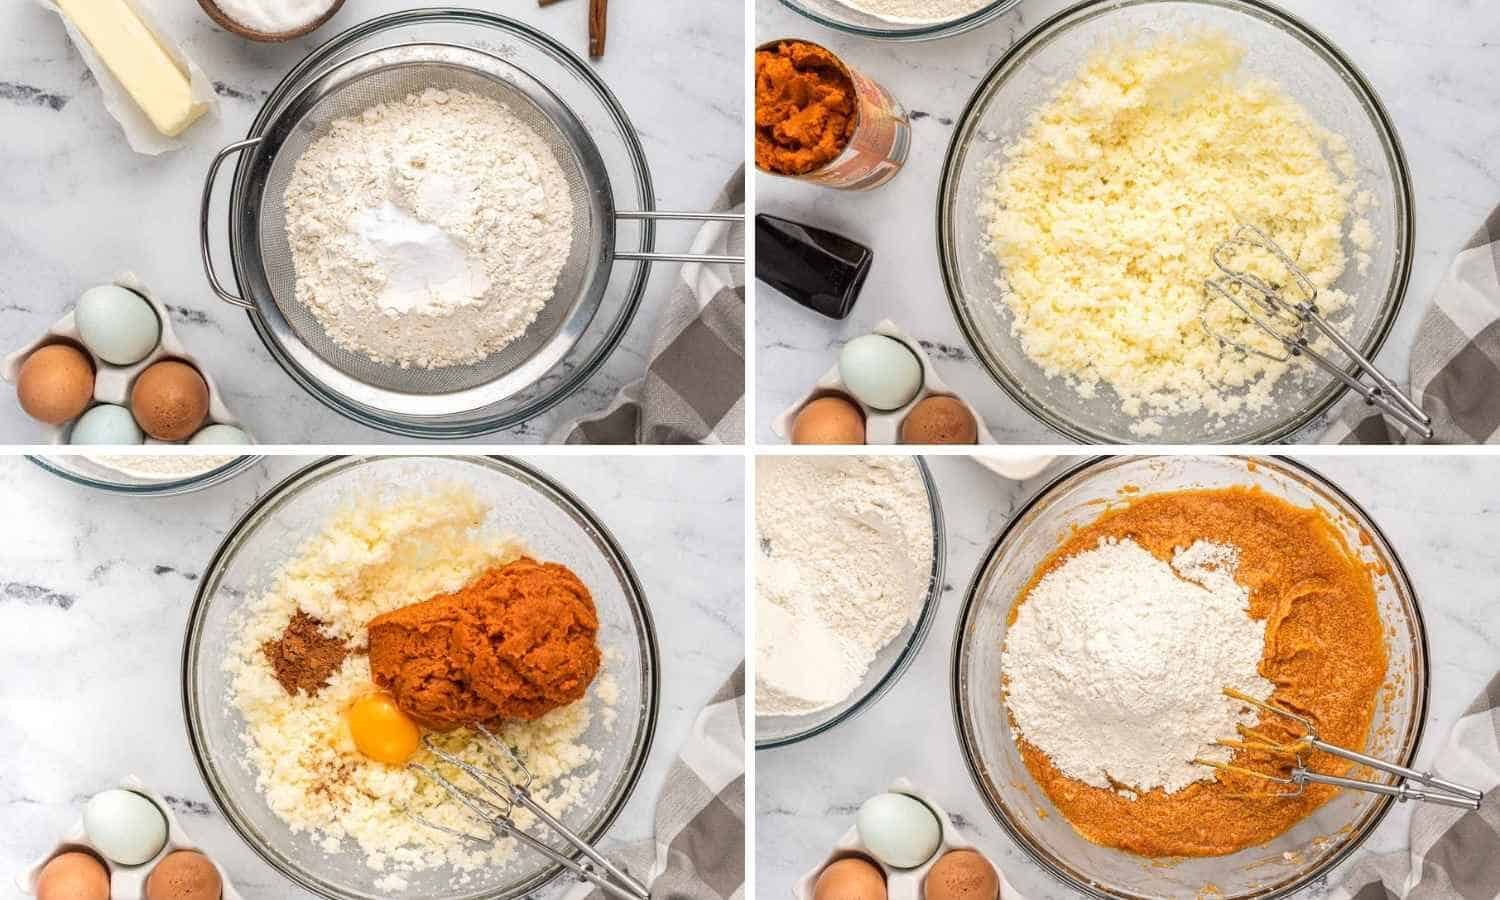 Collage of four images showing how to make pumpkin cake batter